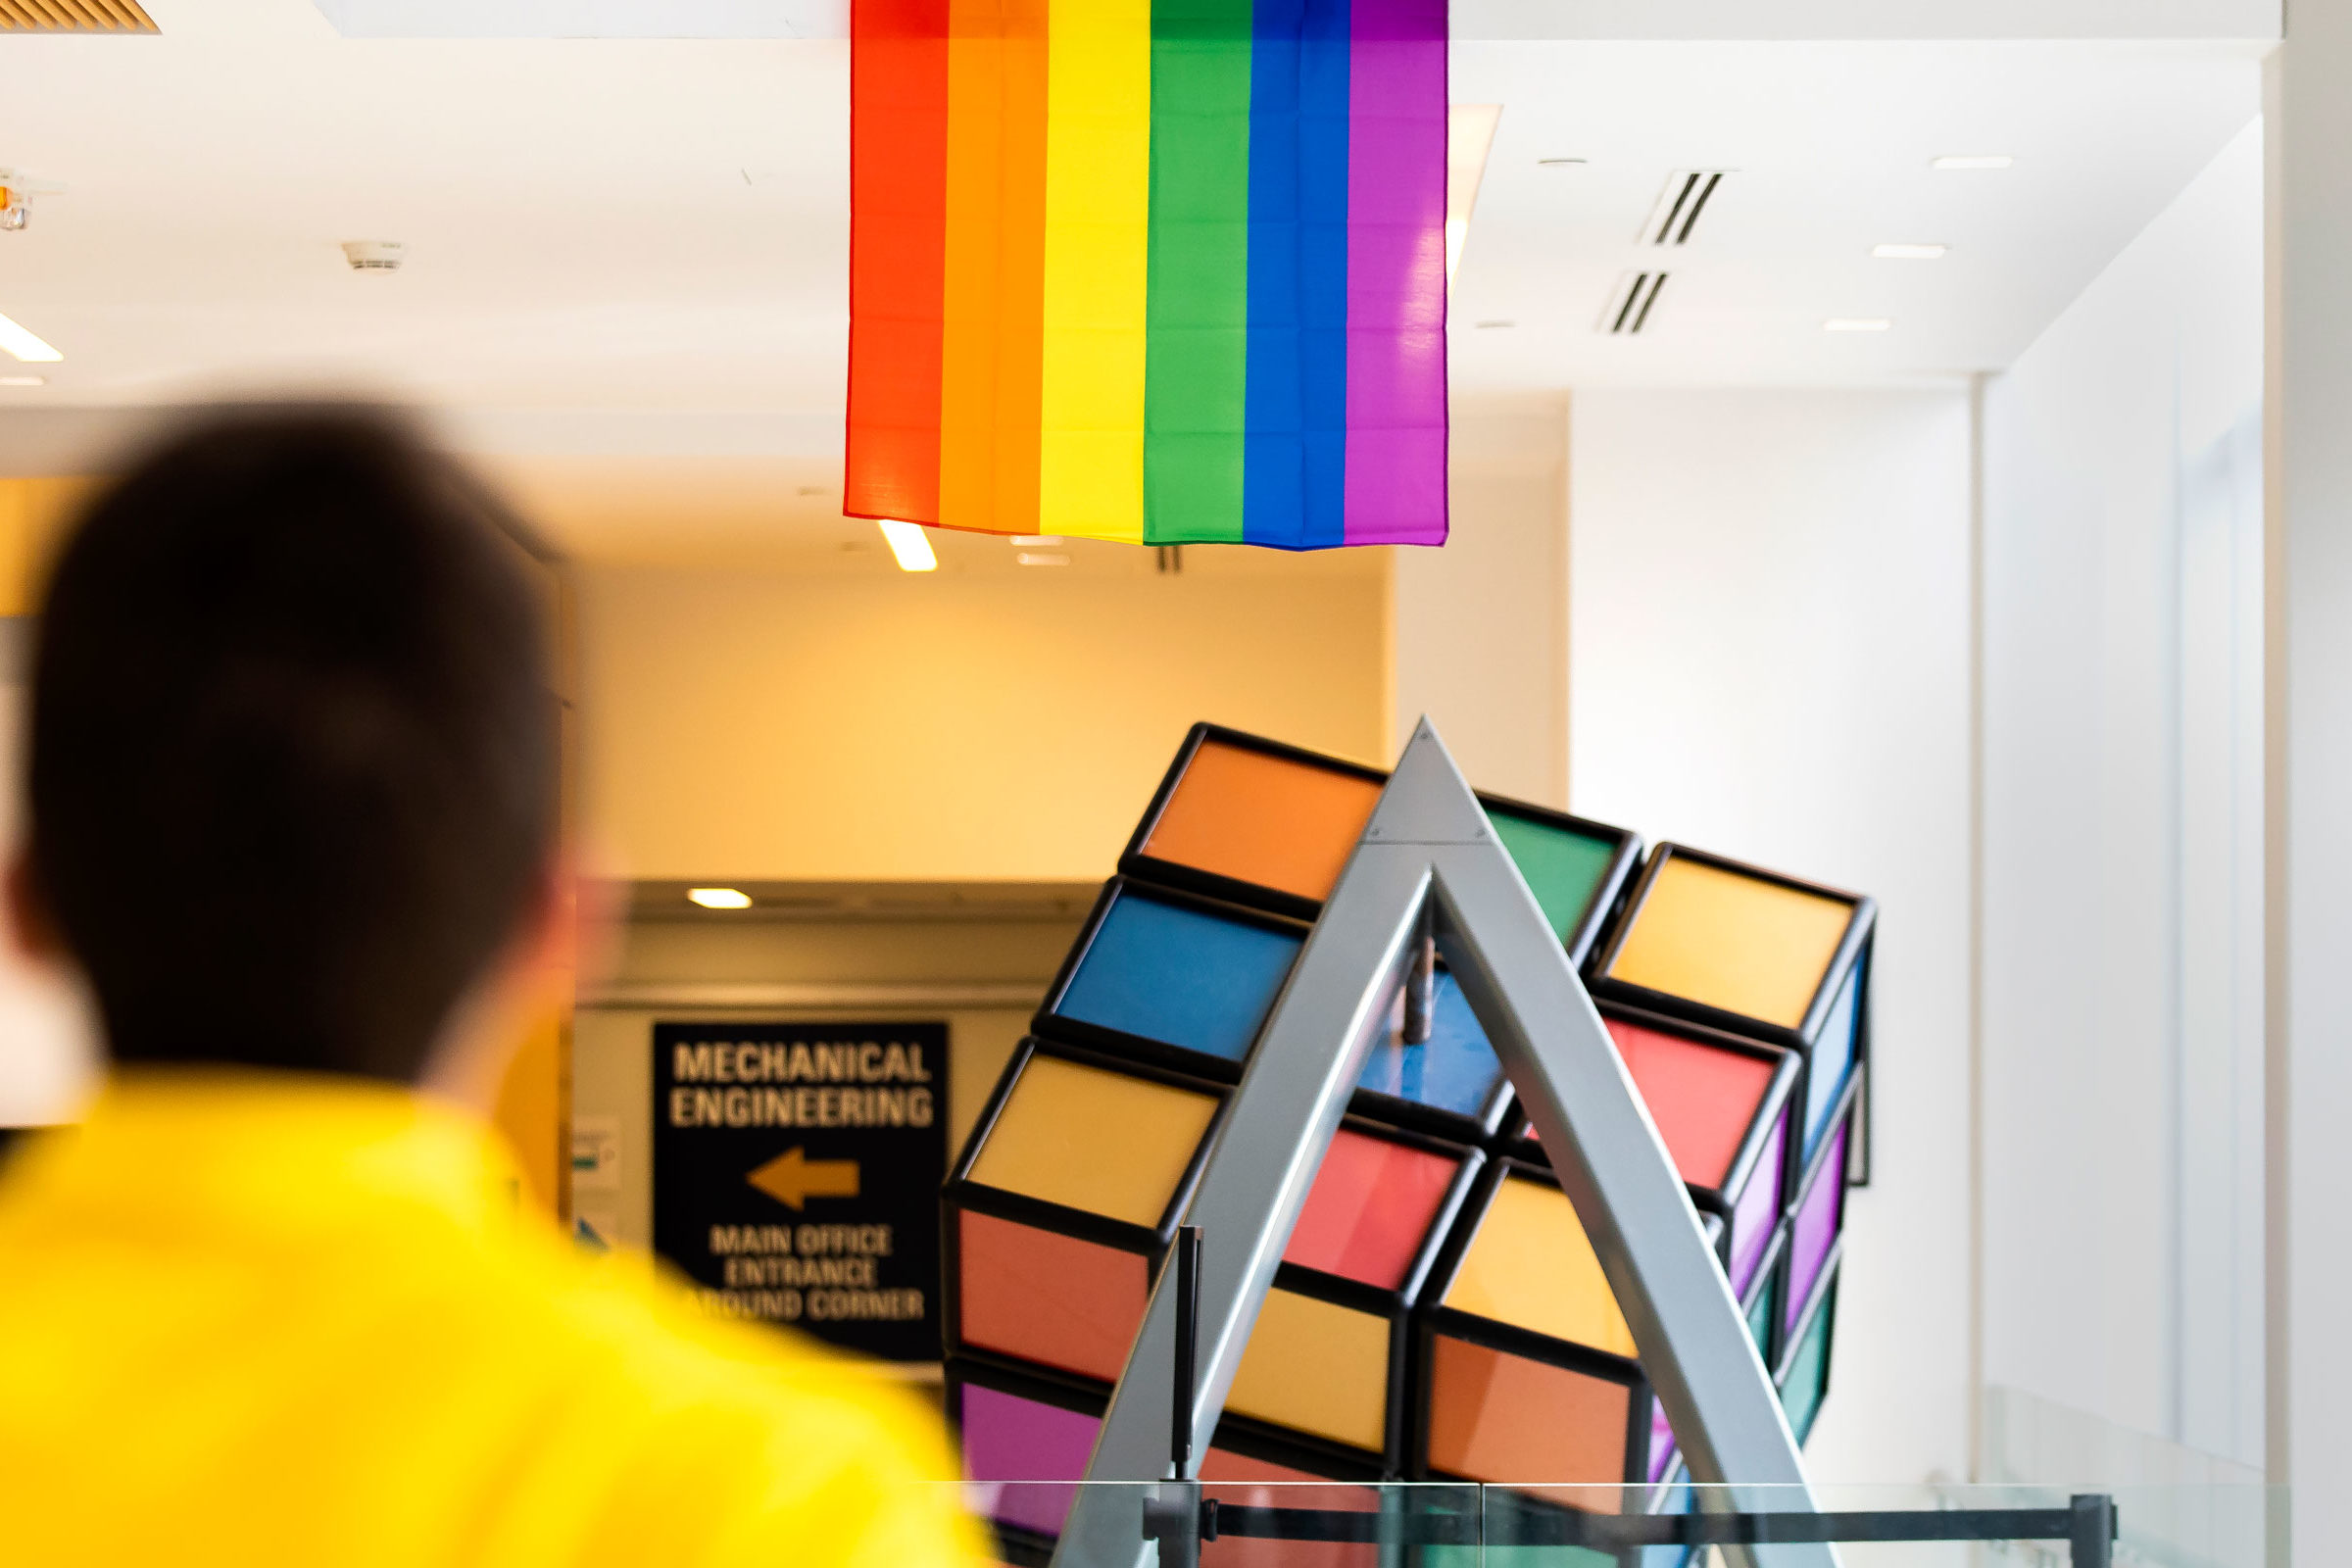 Back to the camera, student walks down the hall towards a giant Rubik's cube display and a rainbow flag